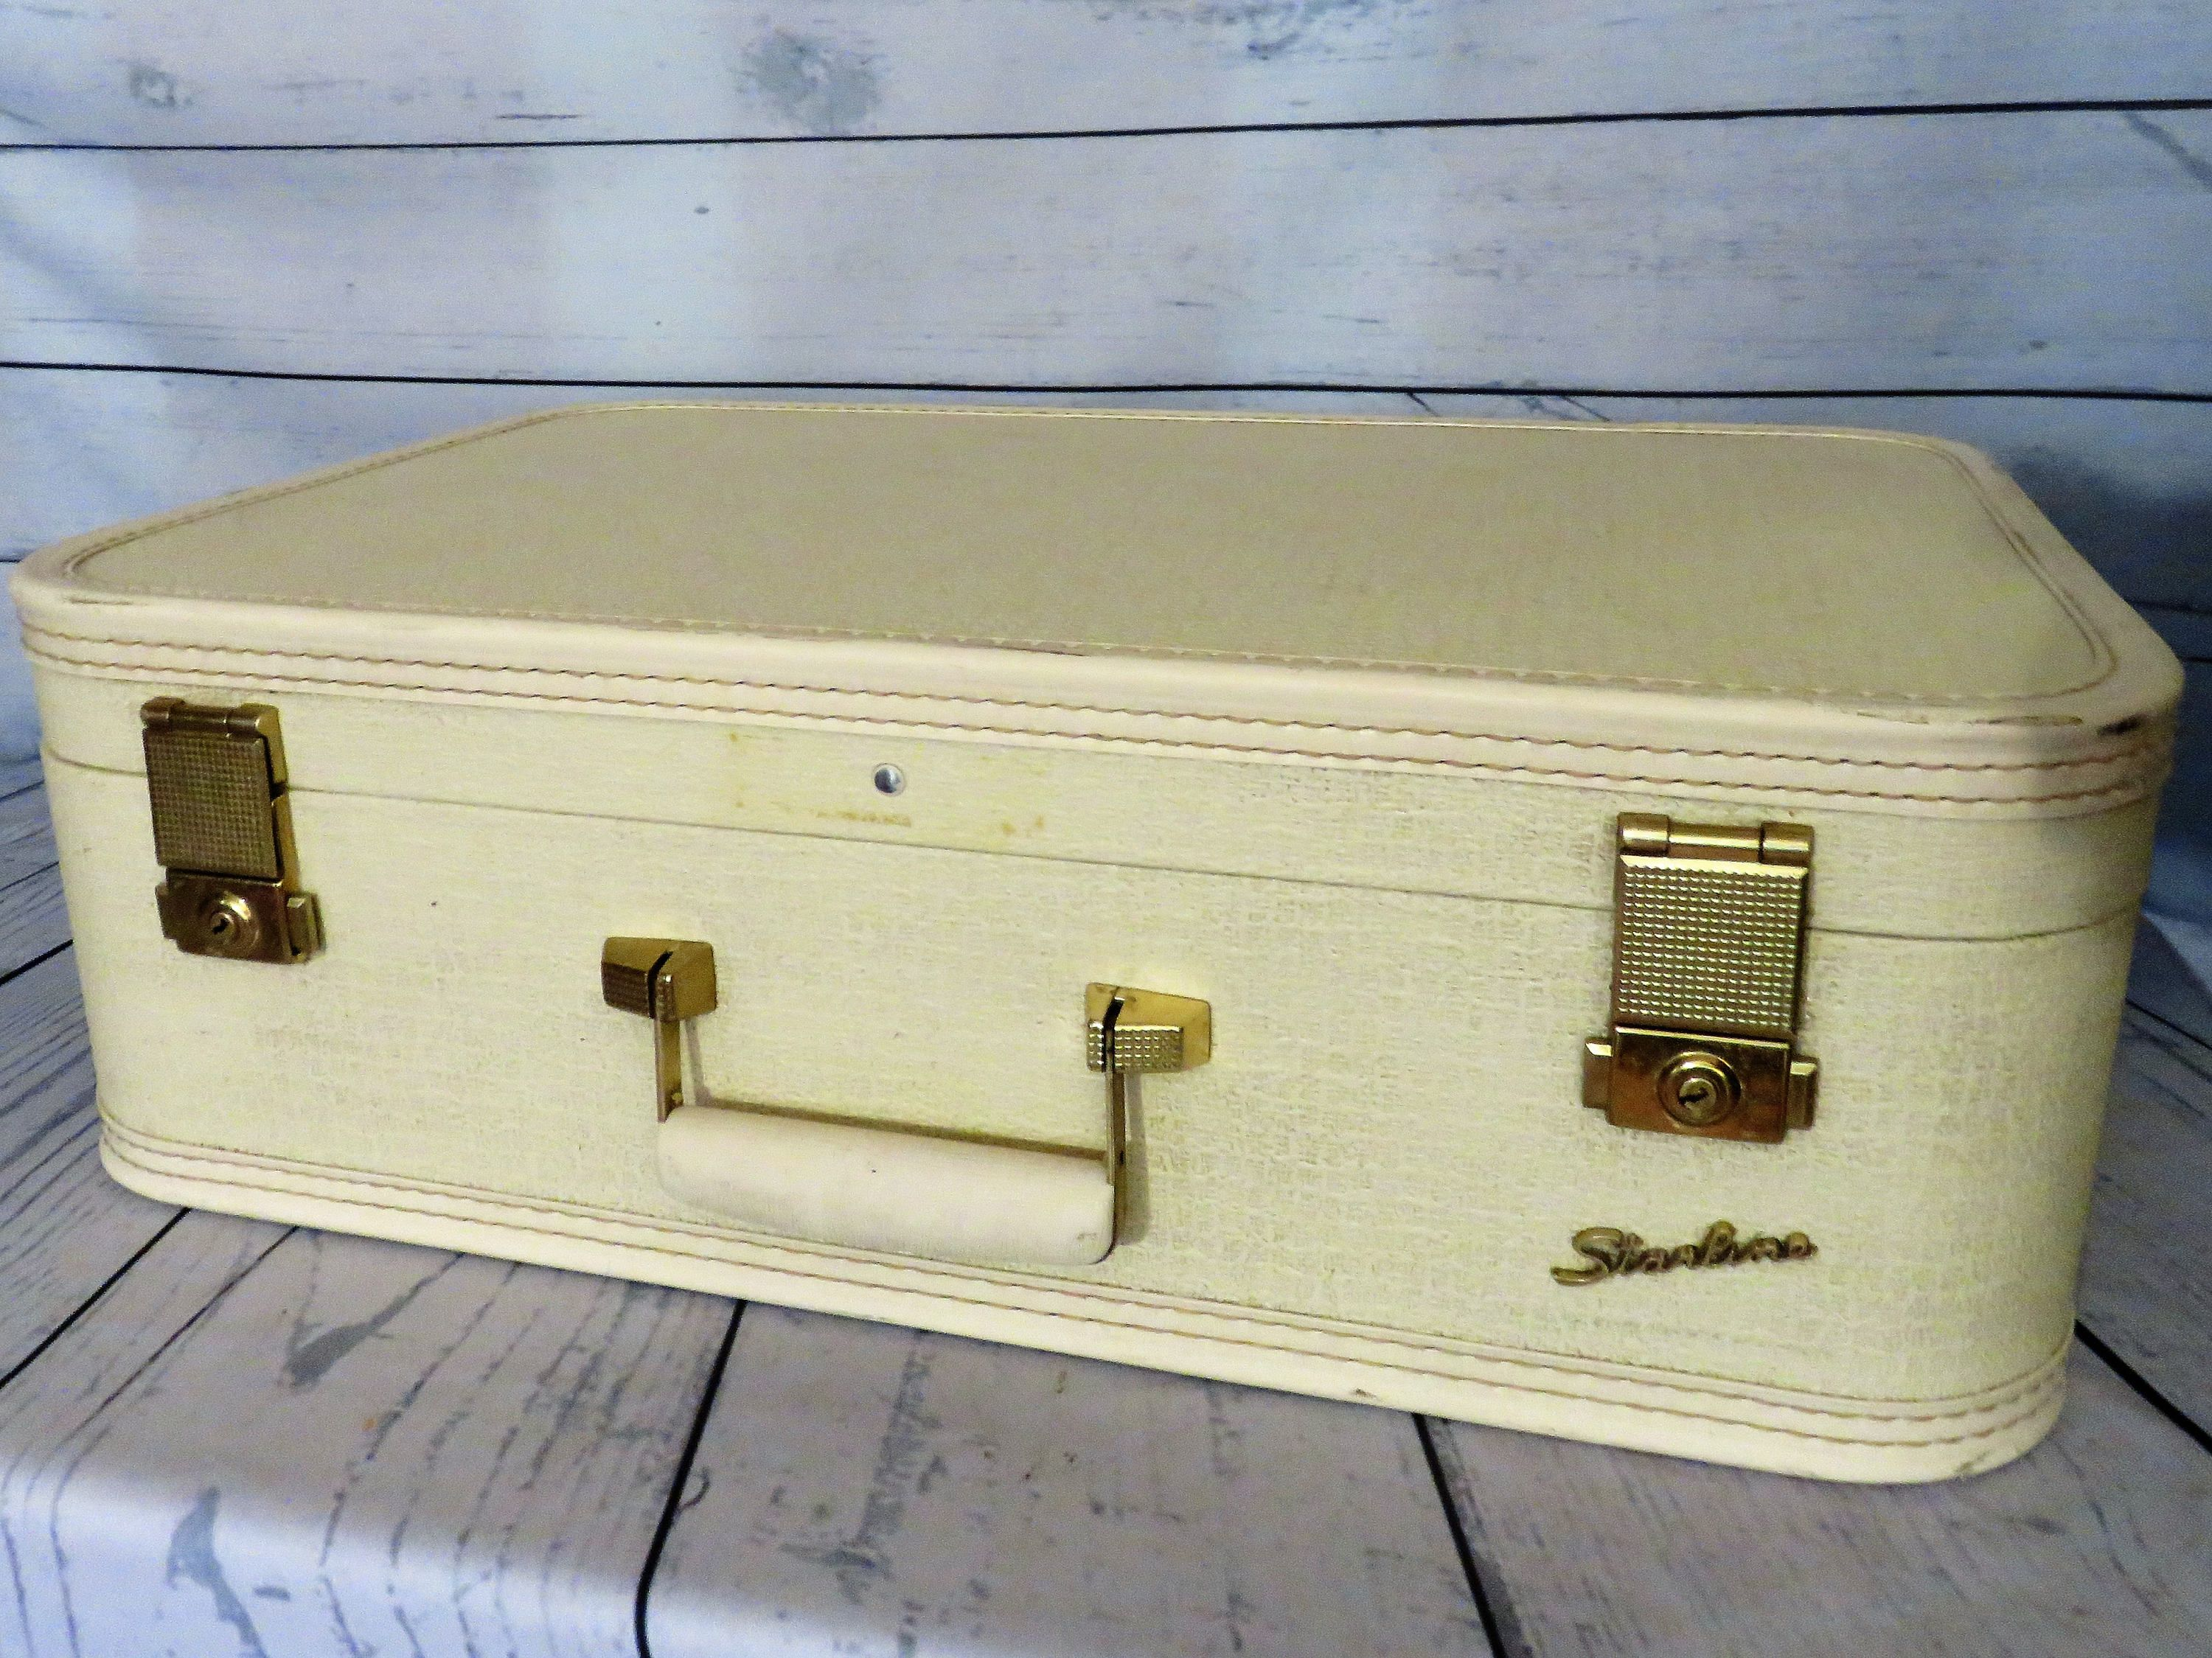 Starline White Suitcase 1950s Vintage Luggage Mid Sized Hard Side Travel Bag Overnight Carry Case By